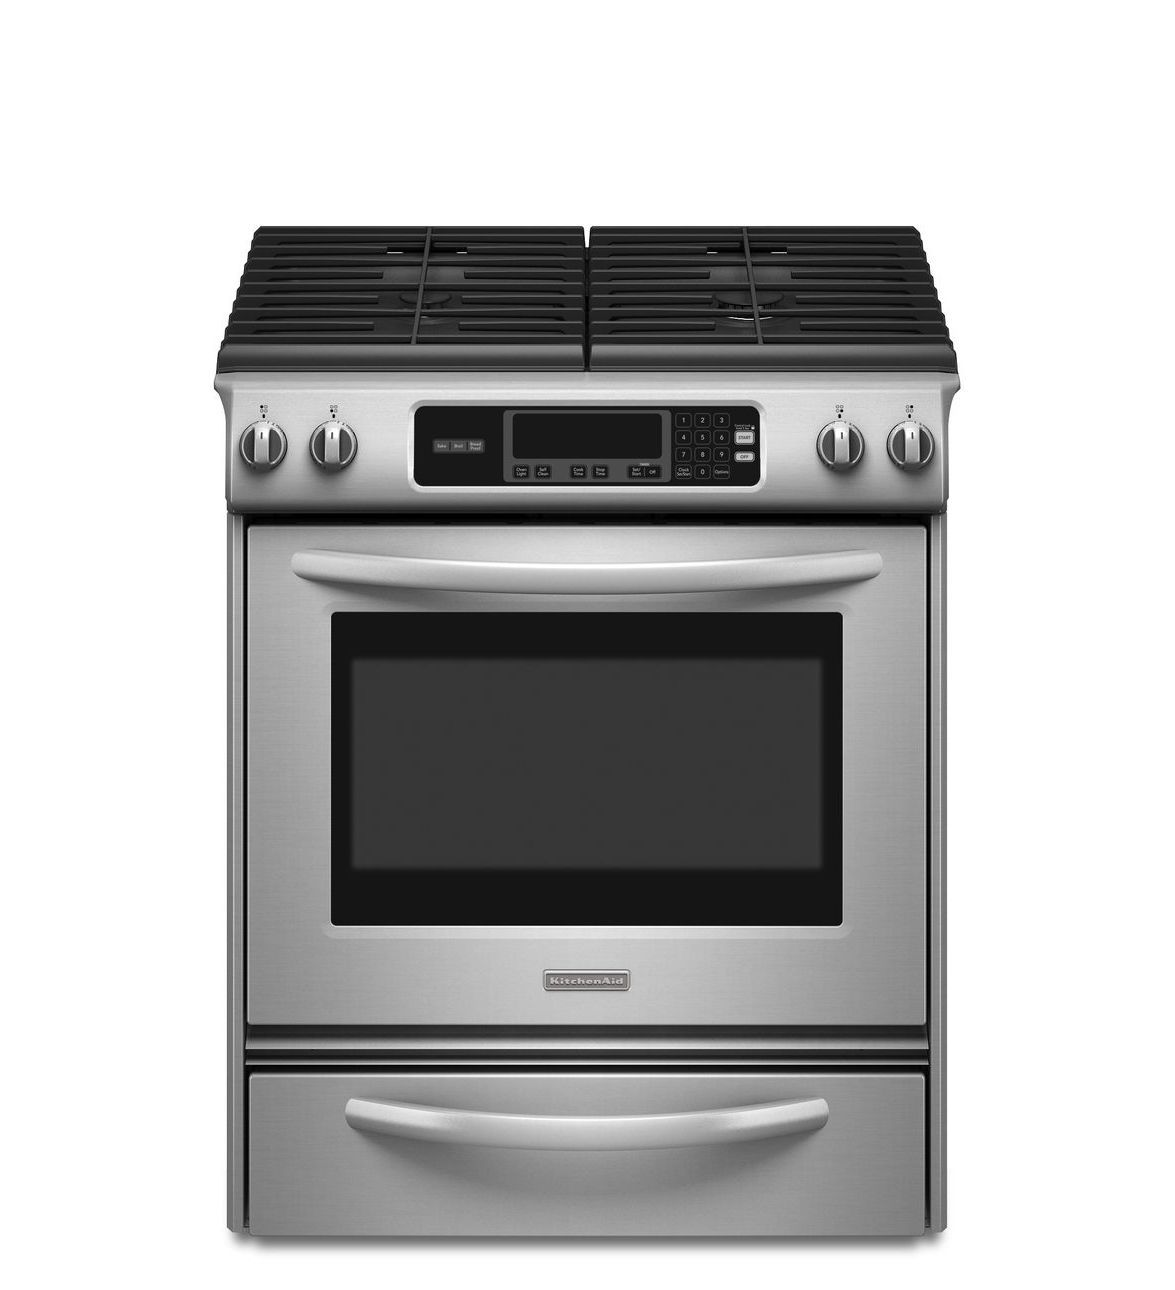 Kitchenaid 30 Inch 4 Burner Gas Slide In Range Architect Series Ii Kgsk901sss Stainless Steel